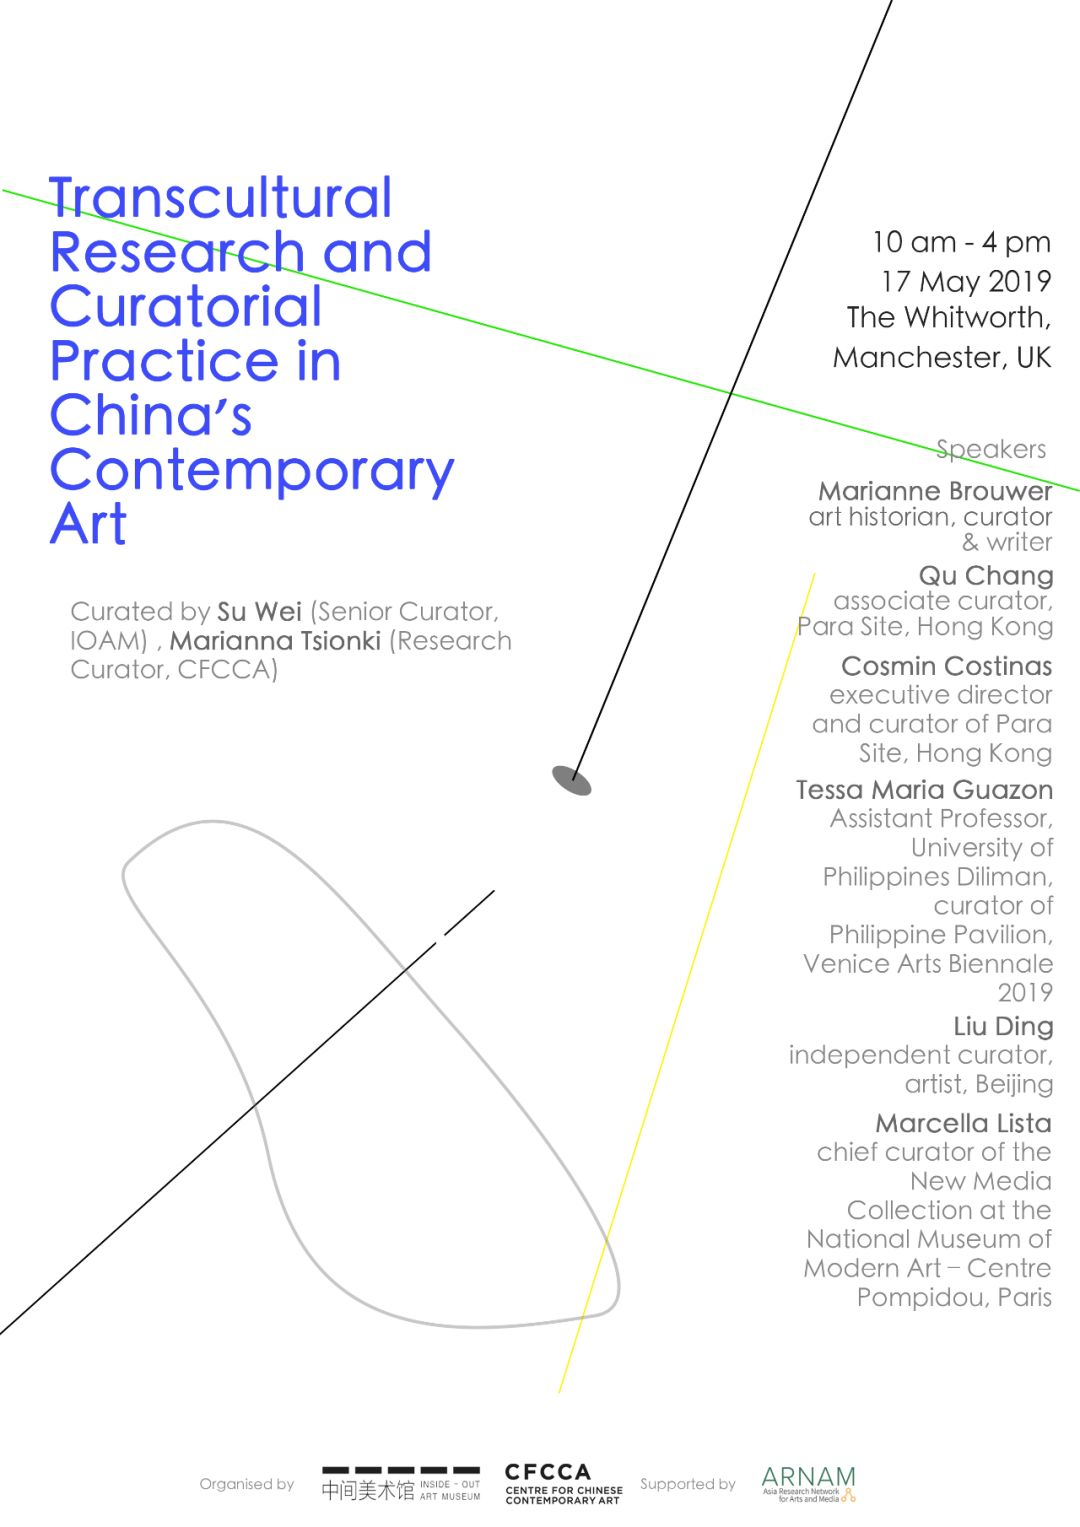 Research and Curatorial Practice: Symposium on May 17, 2019